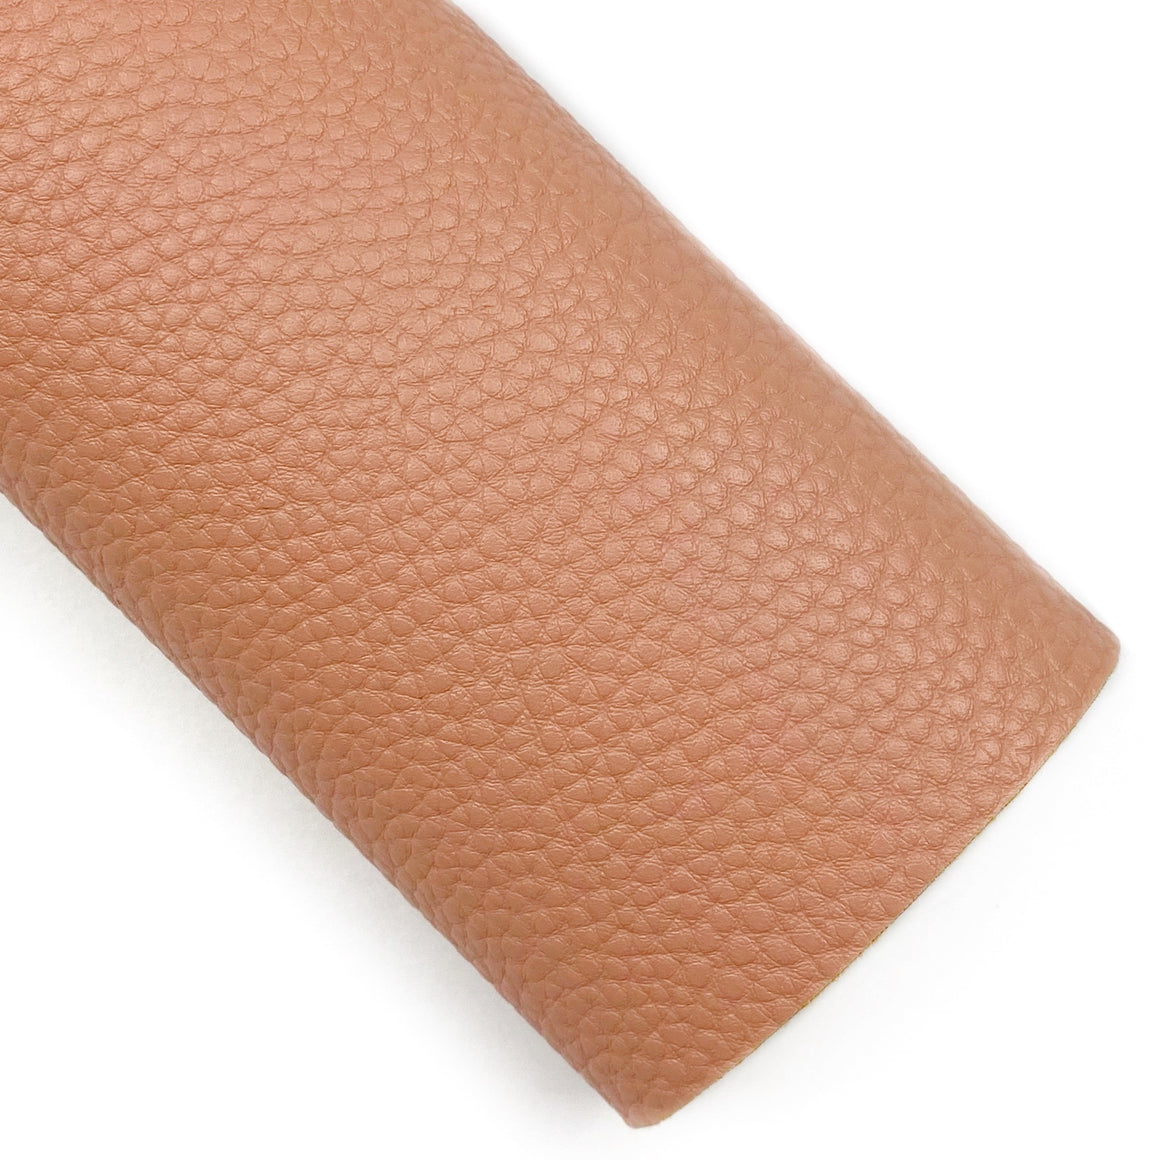 Terracotta Pebbled Vegan Leather